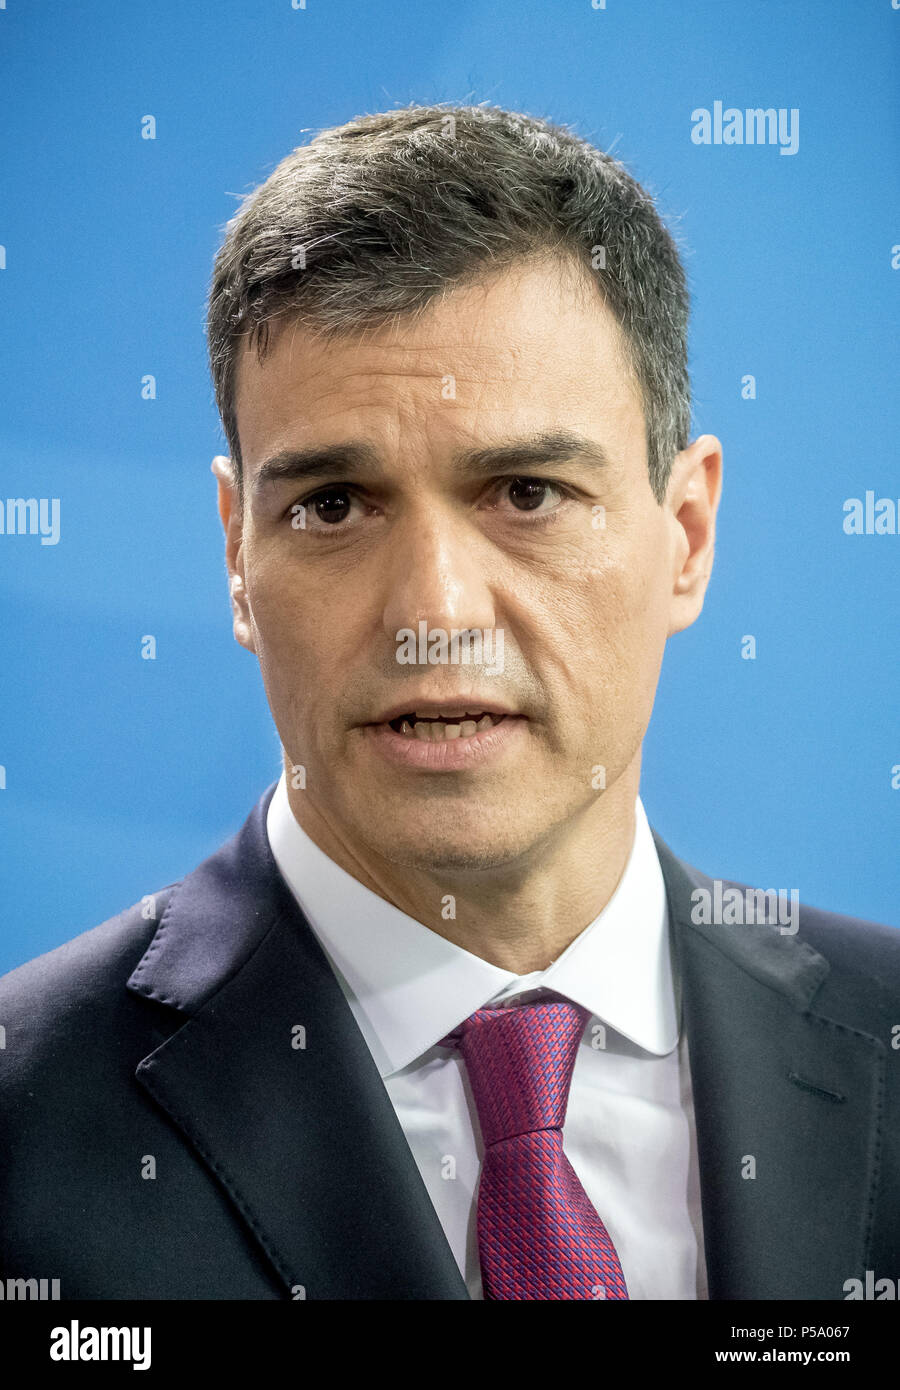 Germany, Berlin. 26th June, 2018. Spanish prime minister Pedro Sanchez during a press conference with German chancellor Merkel. They met for bilateral talks at the federal chancellery in Berlin. Credit: Michael Kappeler/dpa/Alamy Live News - Stock Image